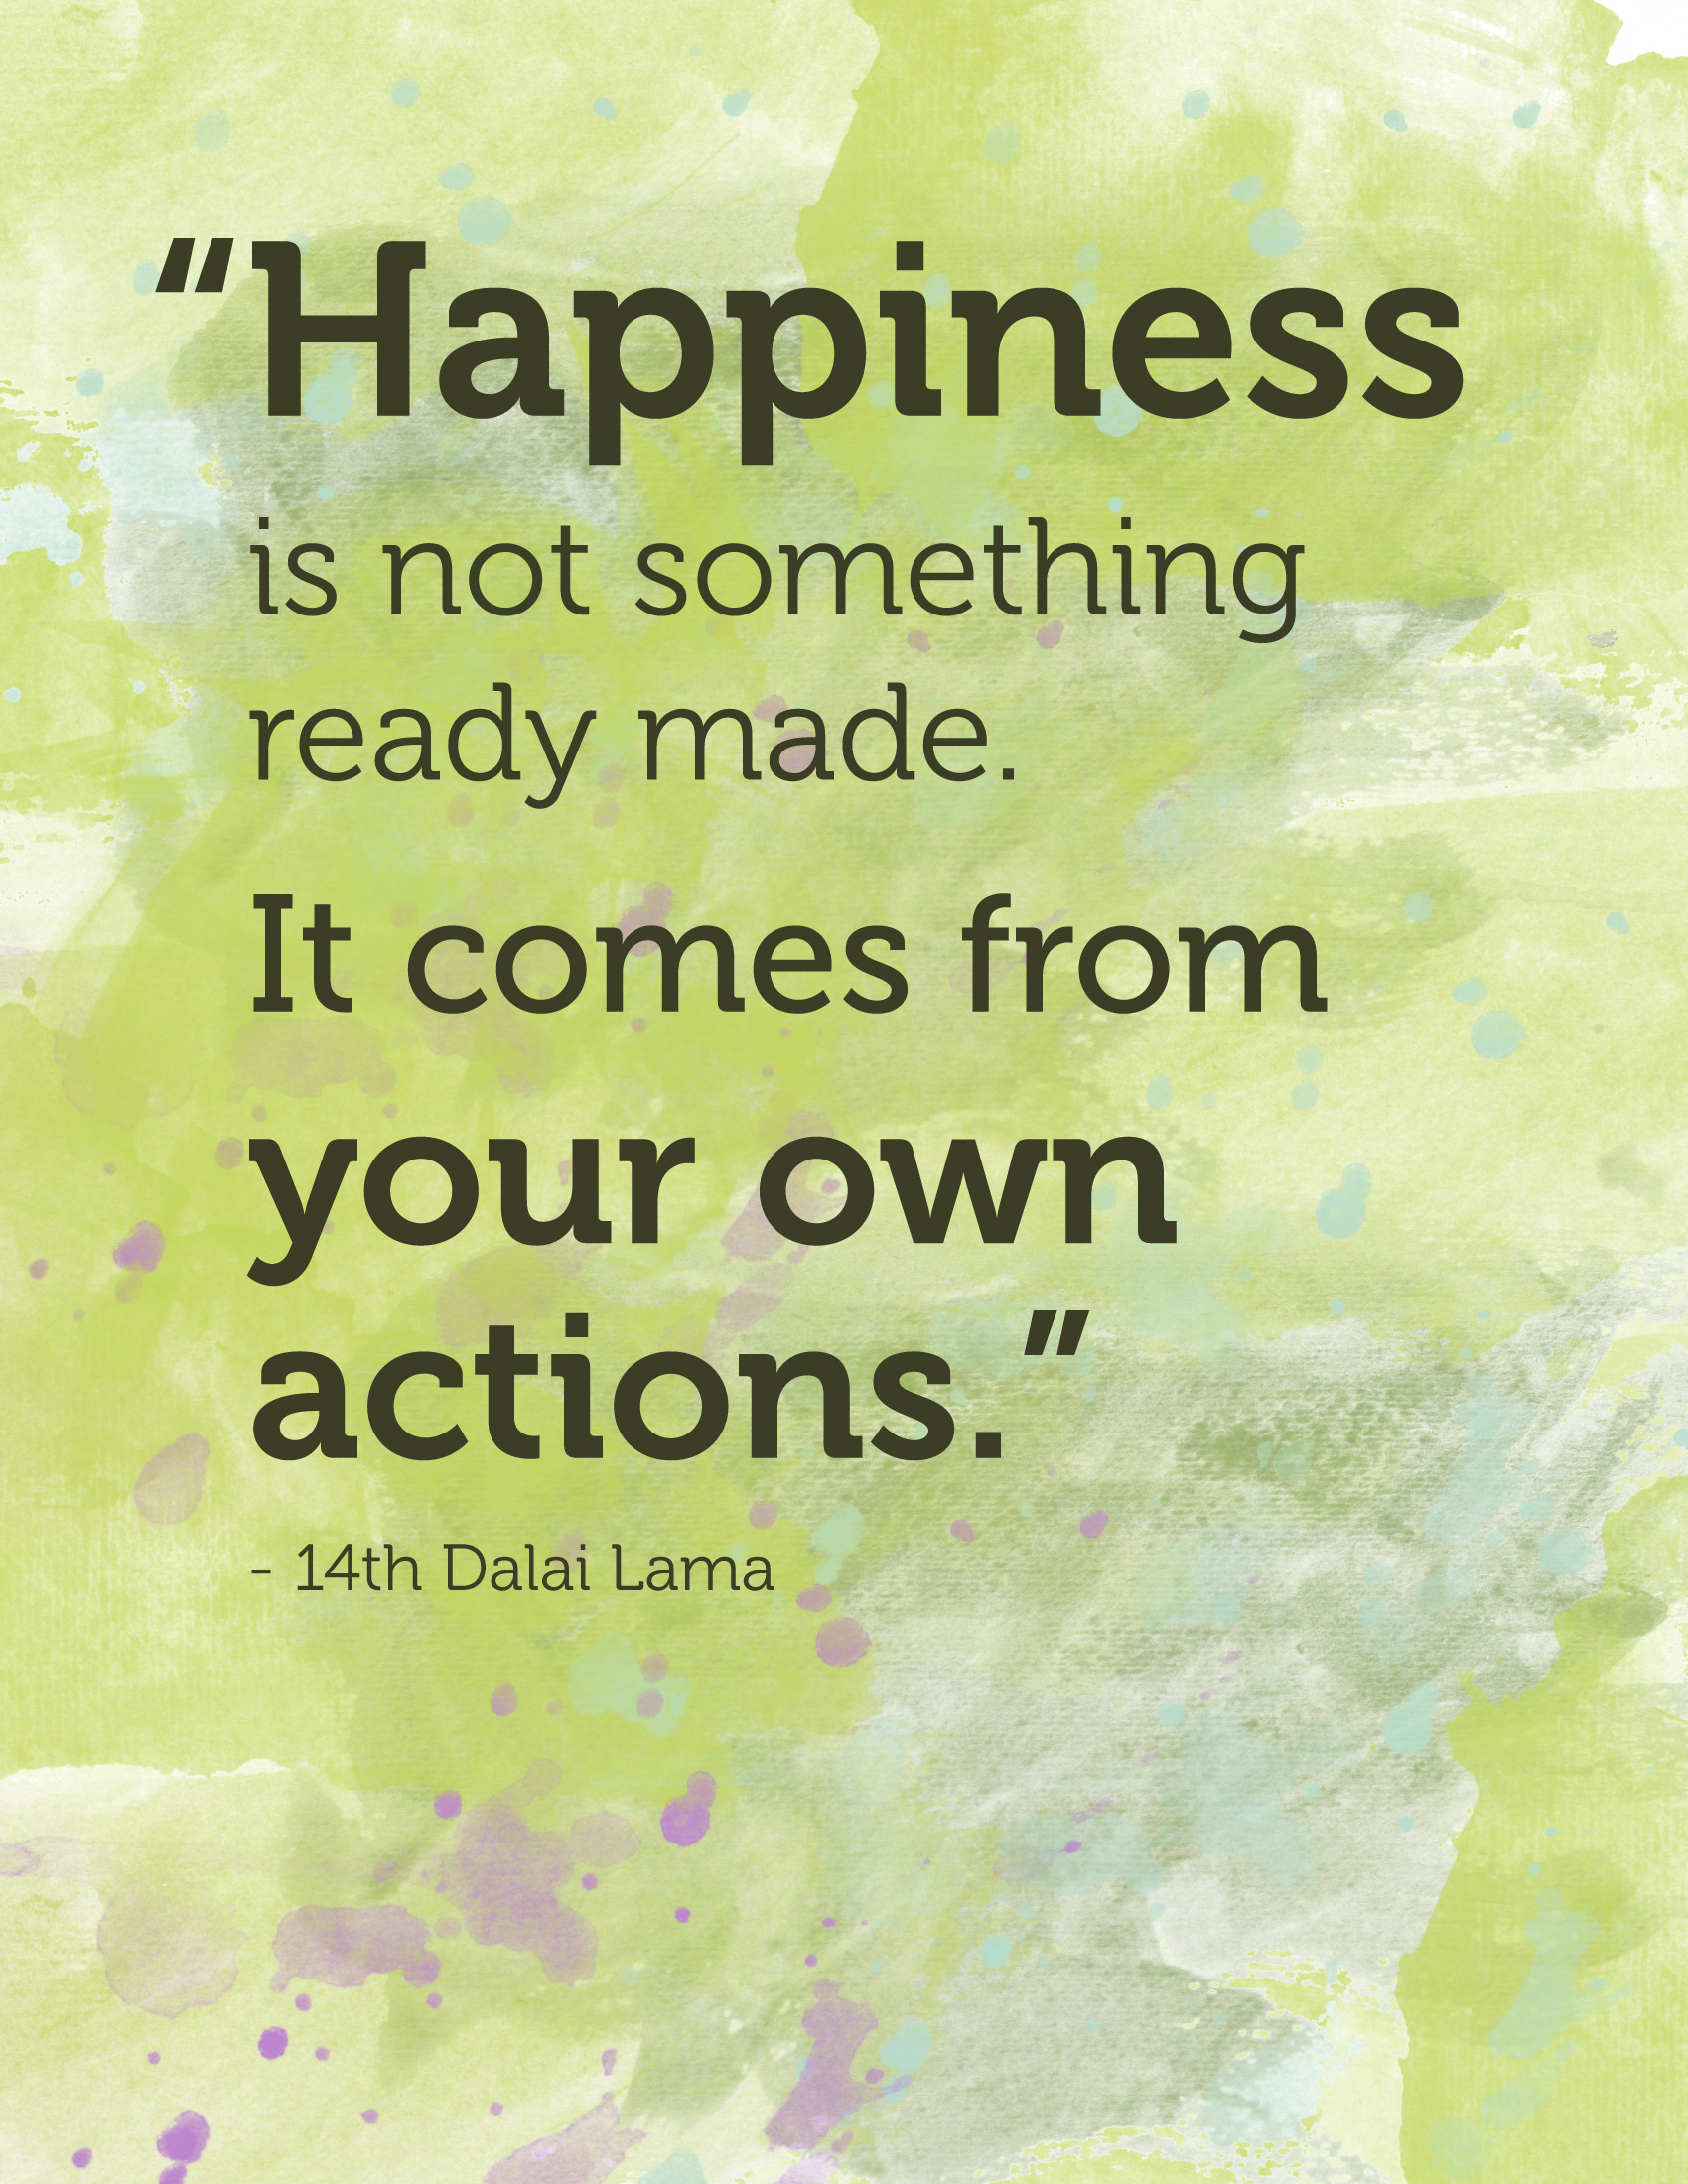 happiness-dalaiLama